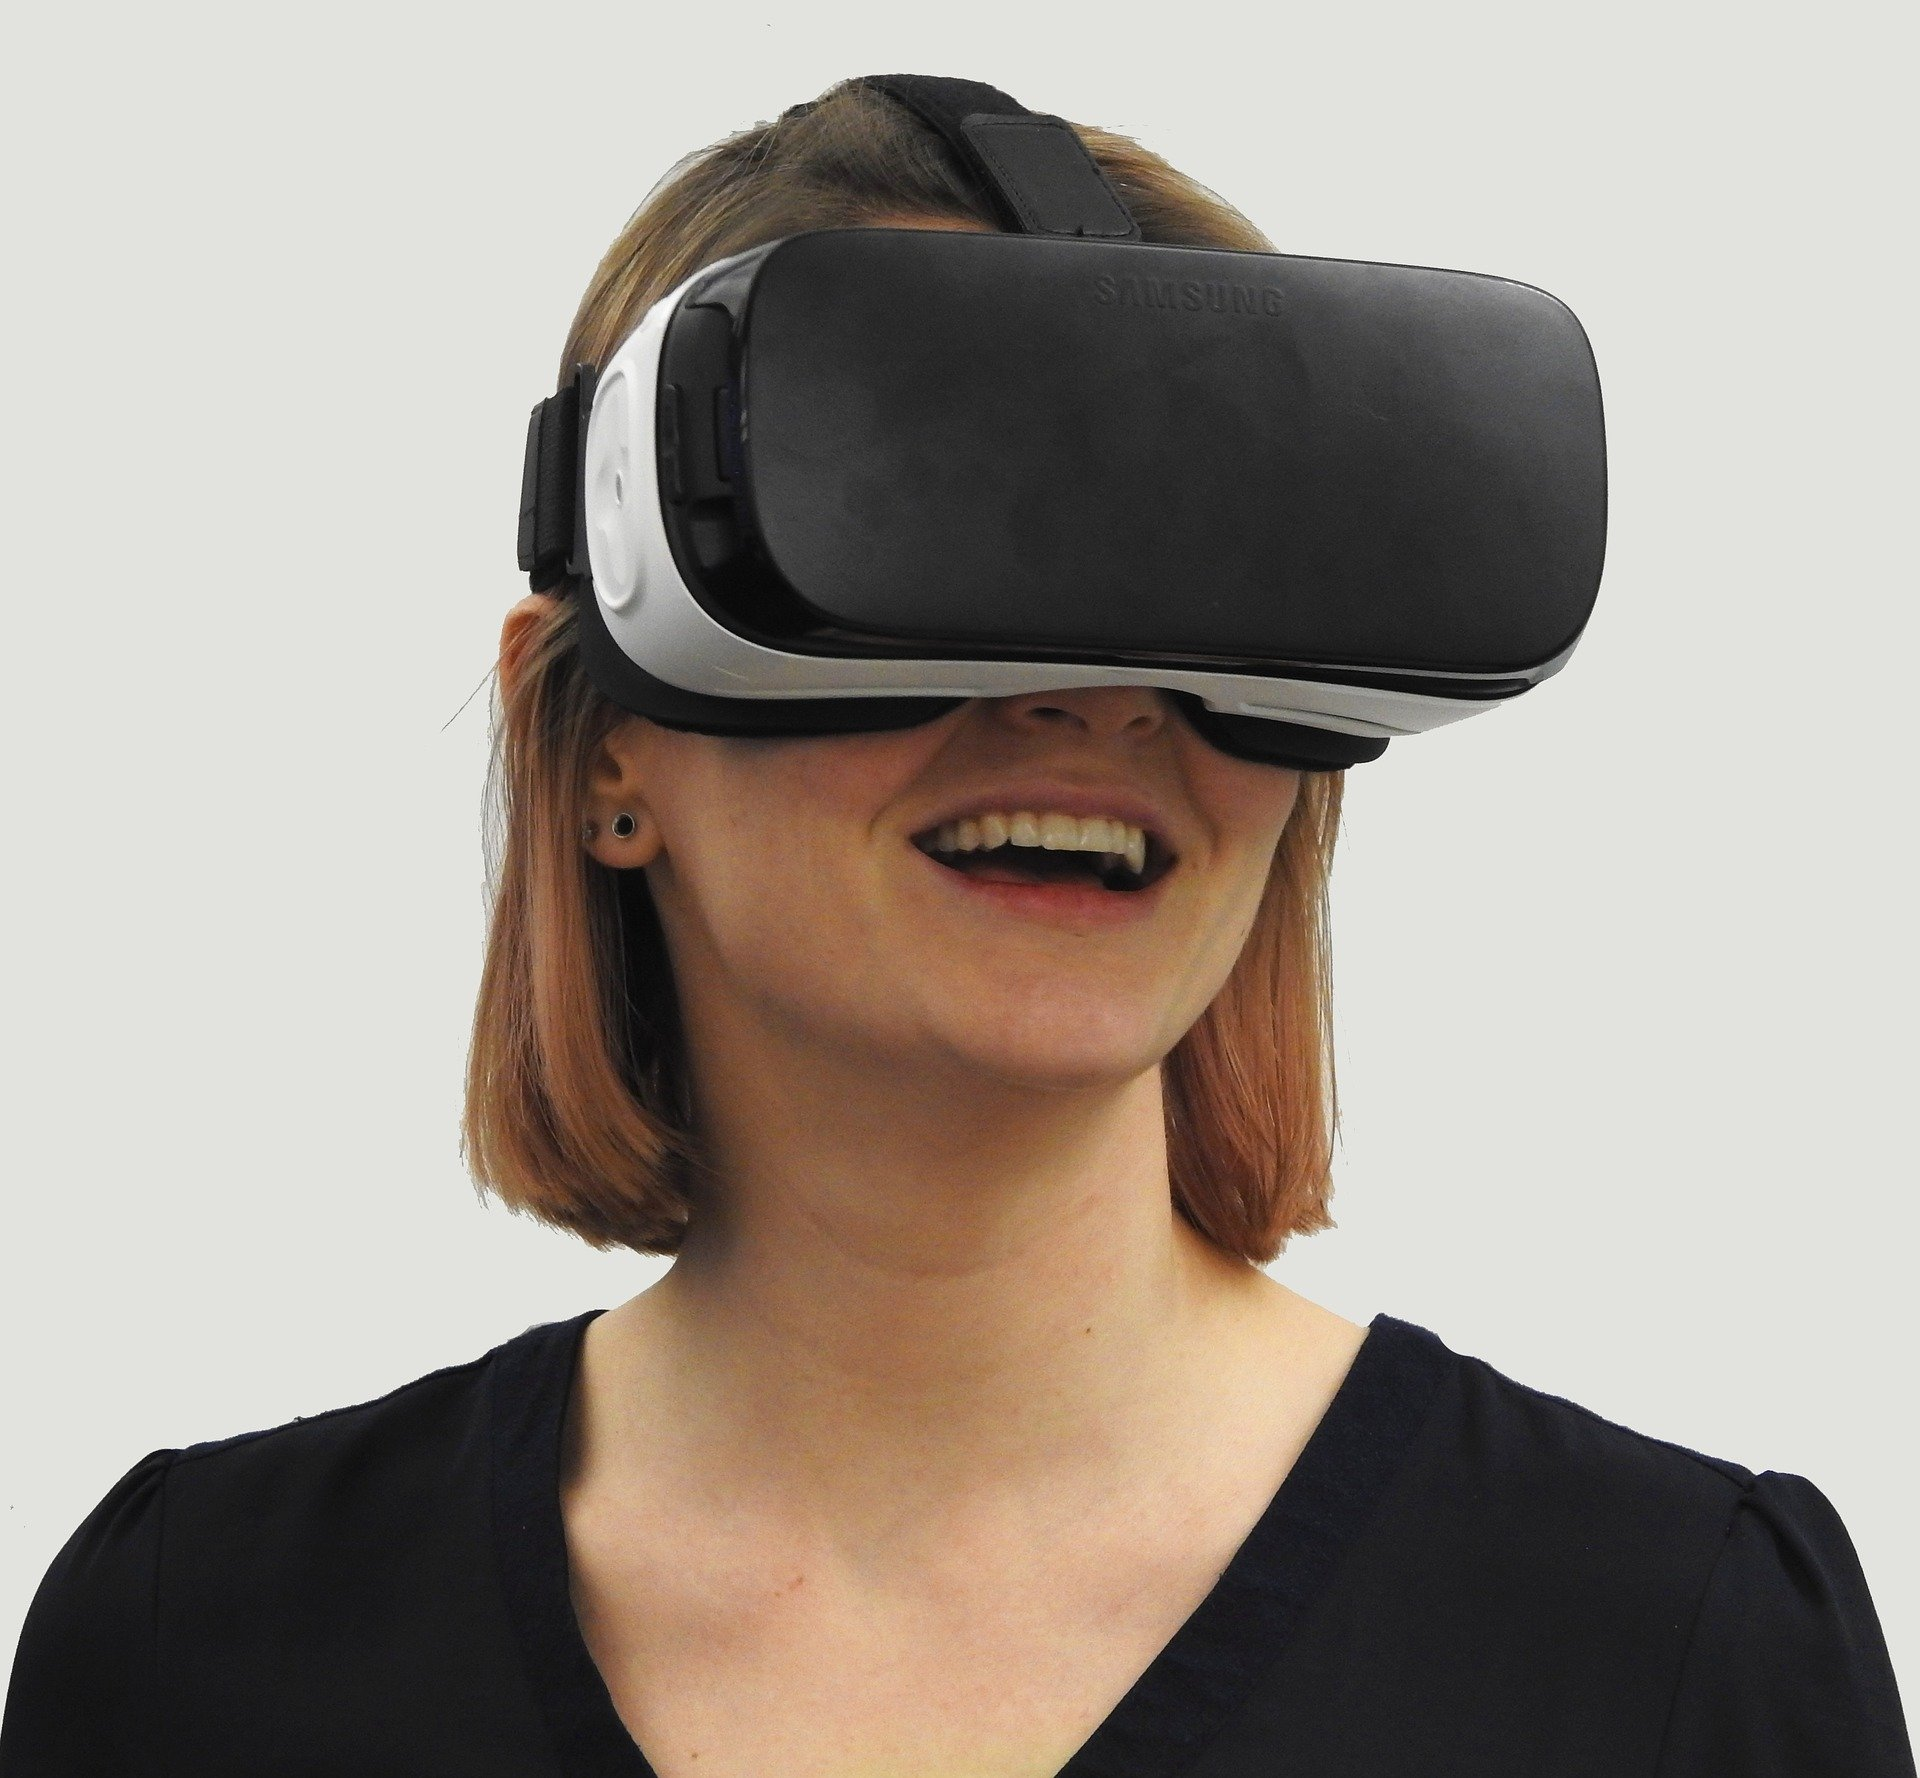 woman smiling wearing vr headset